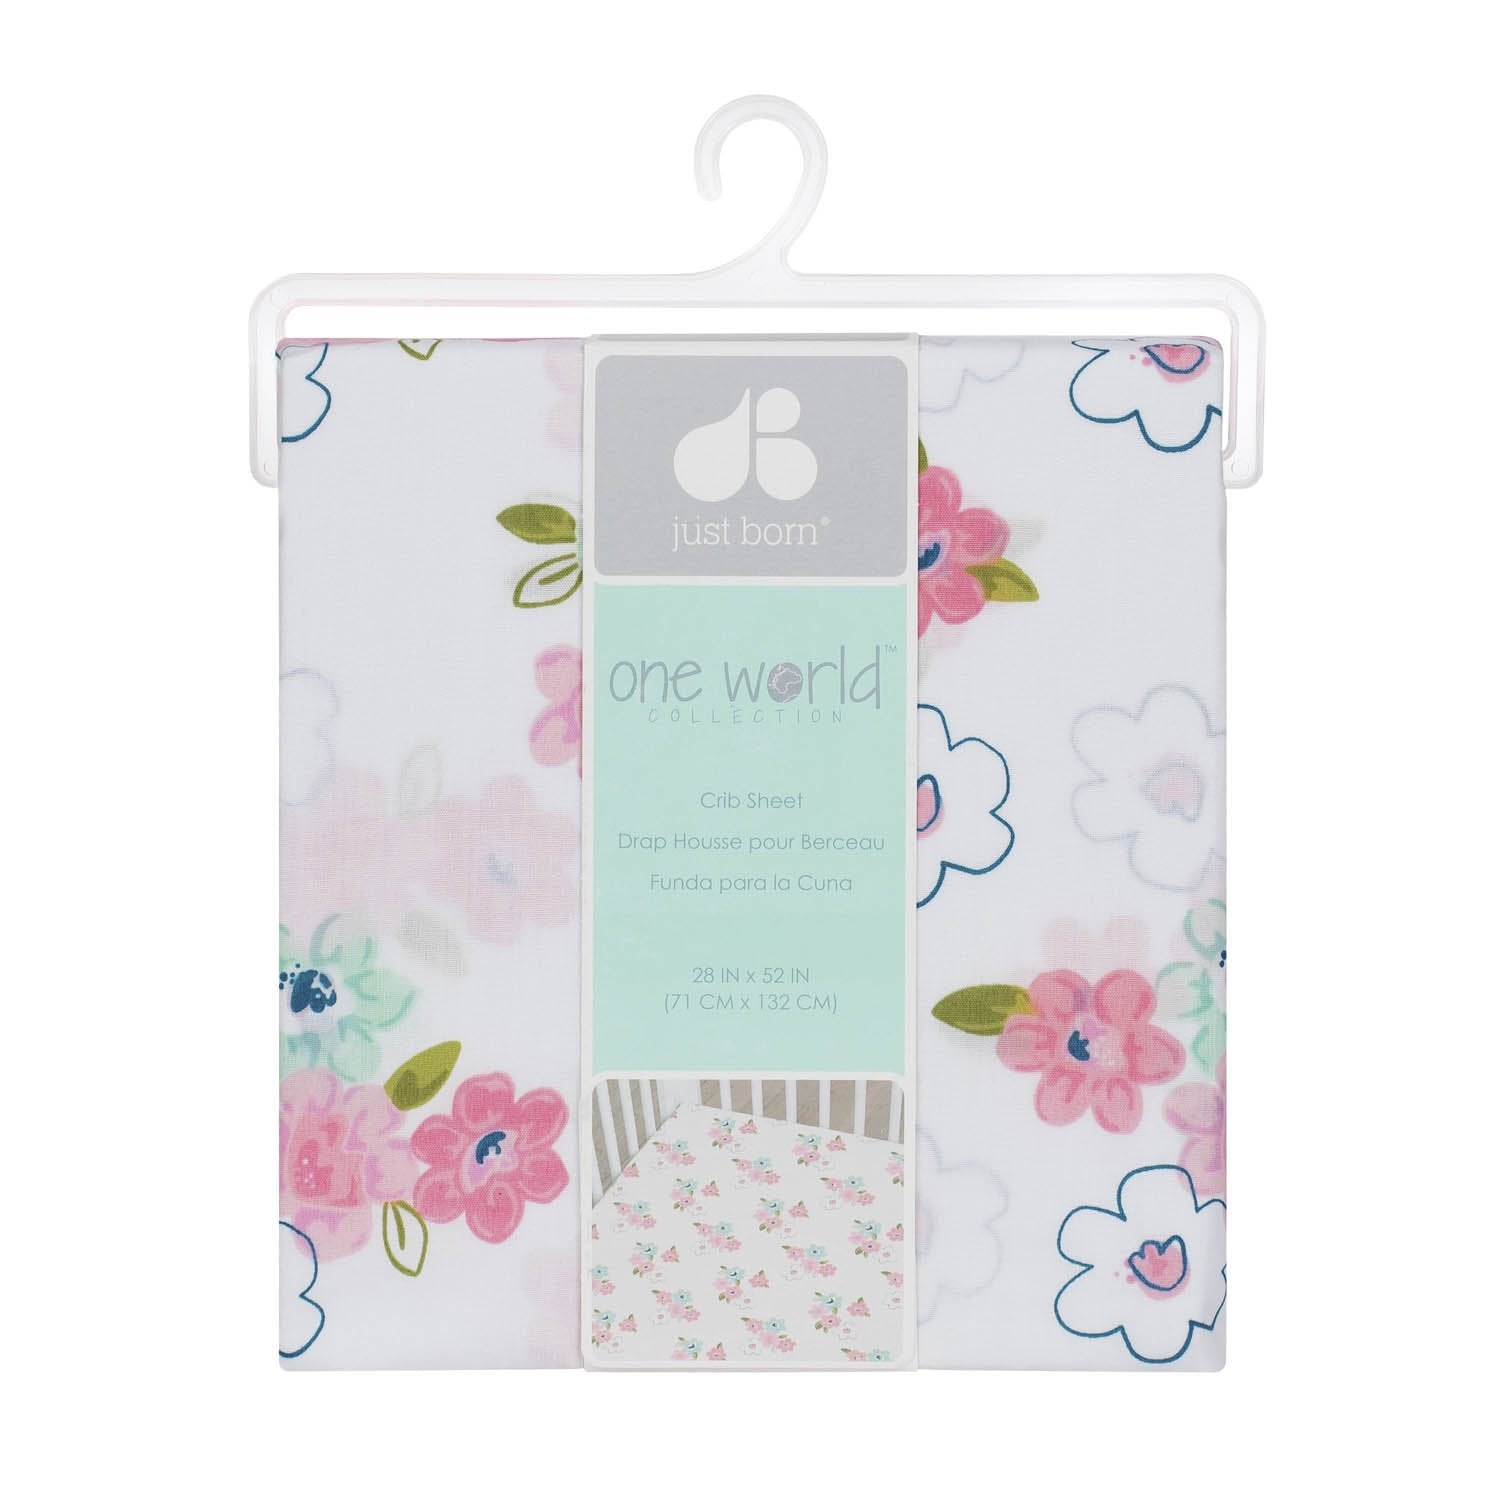 Just Born One World Collection Floral Fitted Crib Sheet - Blossom-Gerber Childrenswear